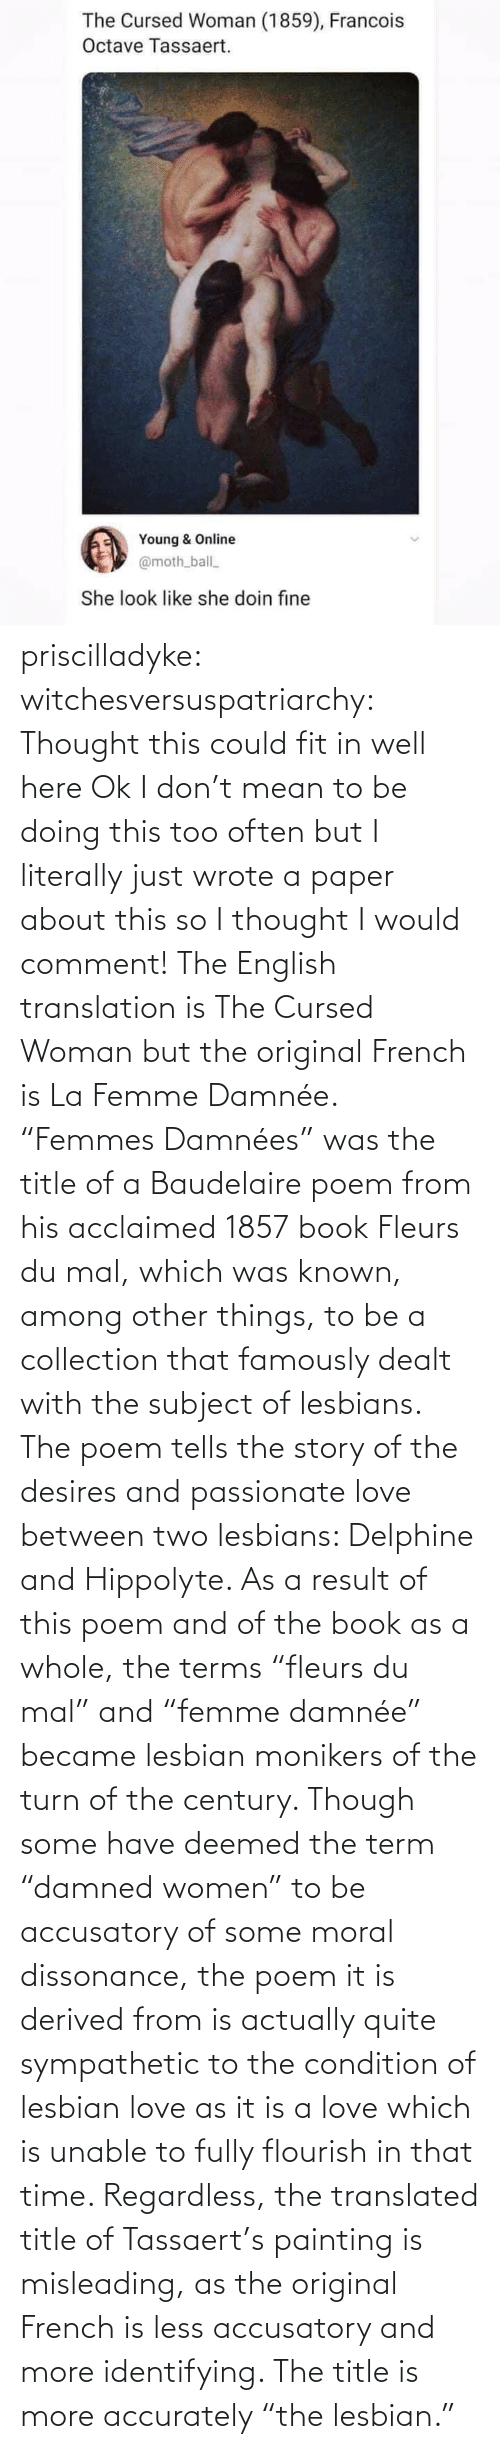 "Quite: priscilladyke:  witchesversuspatriarchy: Thought this could fit in well here   Ok I don't mean to be doing this too often but I literally just wrote a paper about this so I thought I would comment! The English translation is The Cursed Woman but the original French is La Femme Damnée. ""Femmes Damnées"" was the title of a Baudelaire poem from his acclaimed 1857 book Fleurs du mal, which was known, among other things, to be a collection that famously dealt with the subject of lesbians. The poem tells the story of the desires and passionate love between two lesbians:  Delphine and Hippolyte. As a result of this poem and of the book as a whole, the terms ""fleurs du mal"" and ""femme damnée"" became lesbian monikers of the turn of the century. Though some have deemed the term ""damned women"" to be accusatory of some moral dissonance, the poem it is derived from is actually quite sympathetic to the condition of lesbian love as it is a love which is unable to fully flourish in that time. Regardless, the translated title of Tassaert's painting is misleading, as the original French is less accusatory and more identifying. The title is more accurately ""the lesbian."""